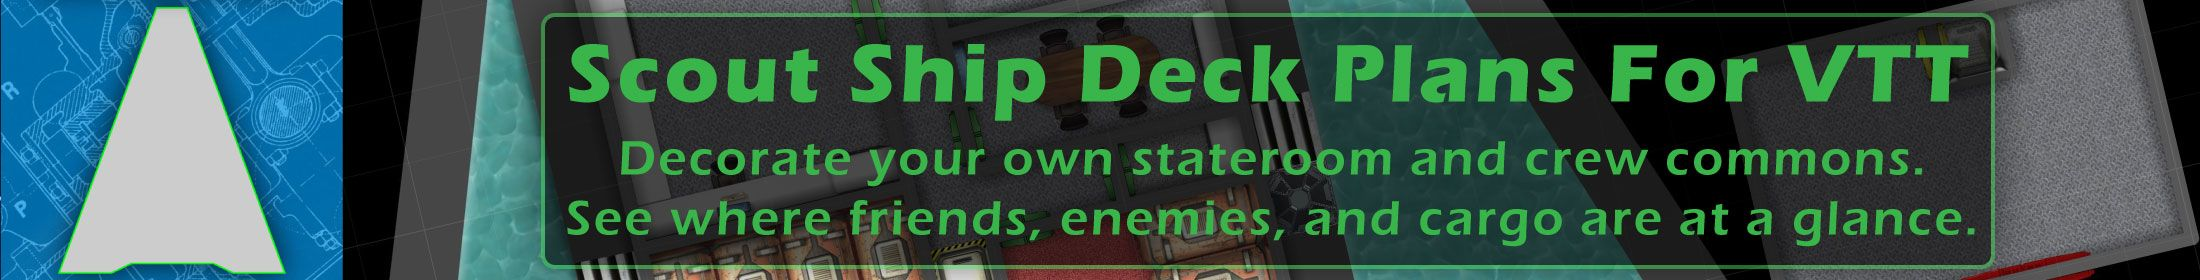 Scout Ship Deck Plans For Roll20 VTT